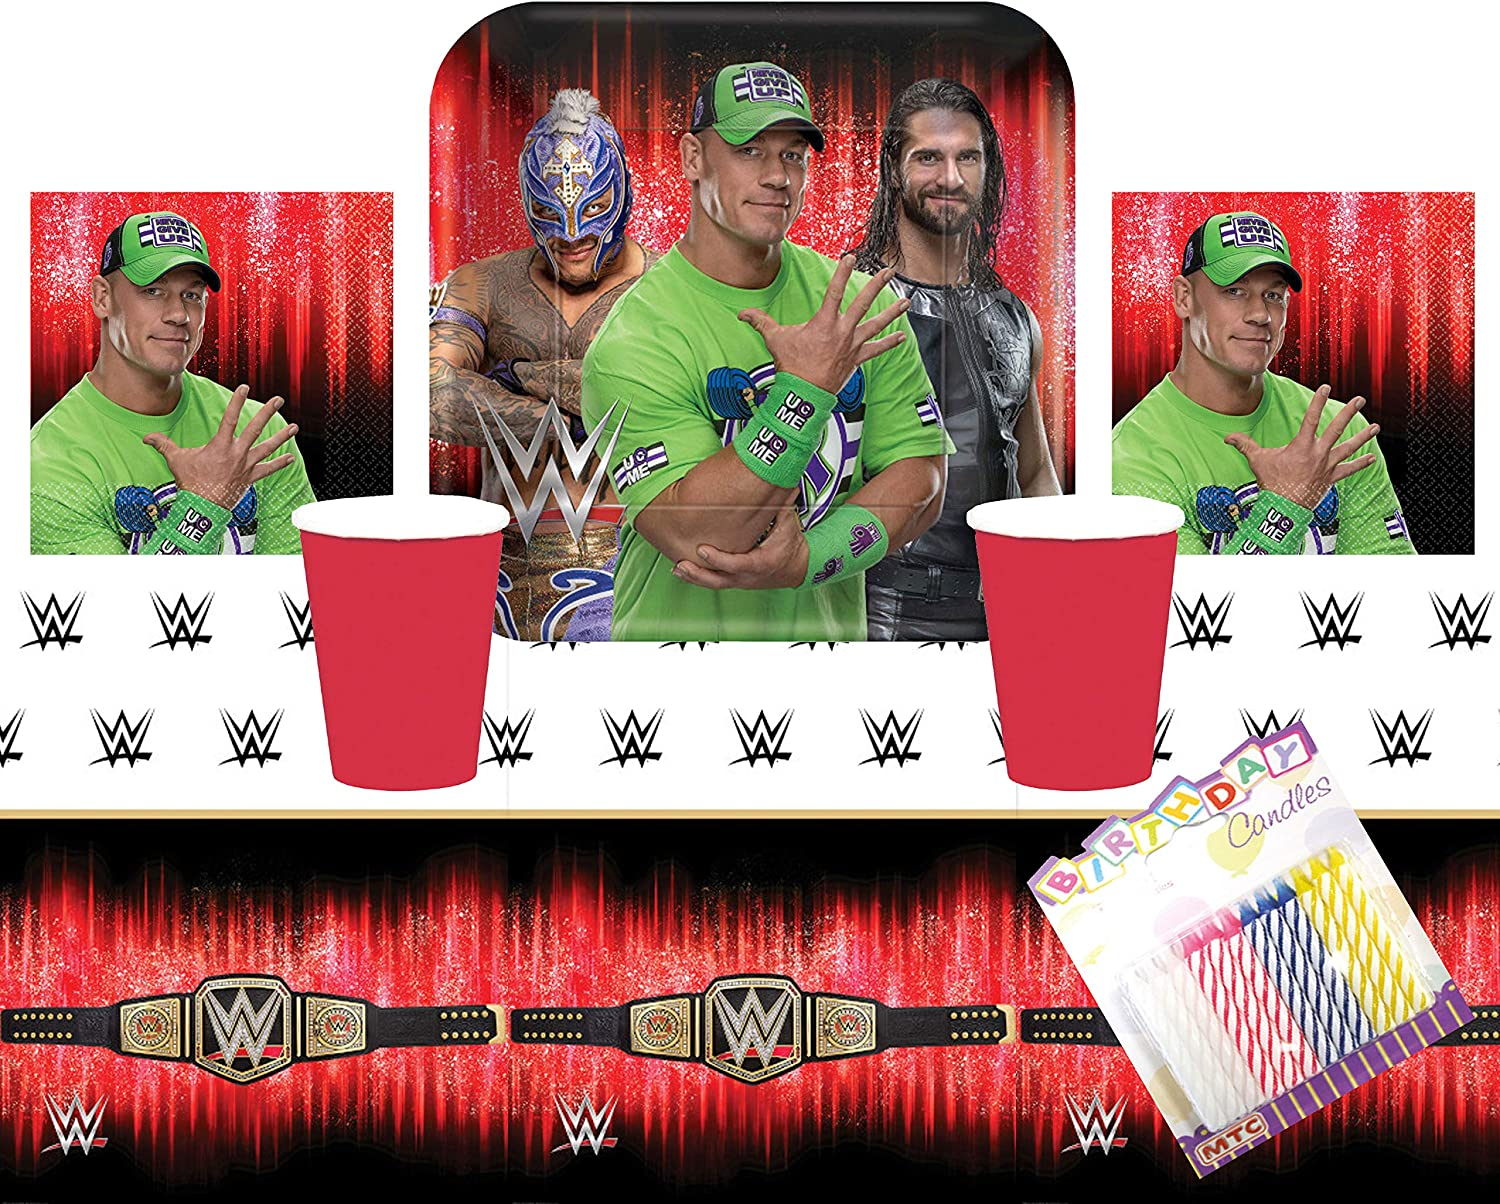 WWE Smash Wrestling Party Suppiles Pack Serves 16: Dinner Plates Luncheon Napkins Cups ans Table Cover with Birthday Candles (Bundle for 16)